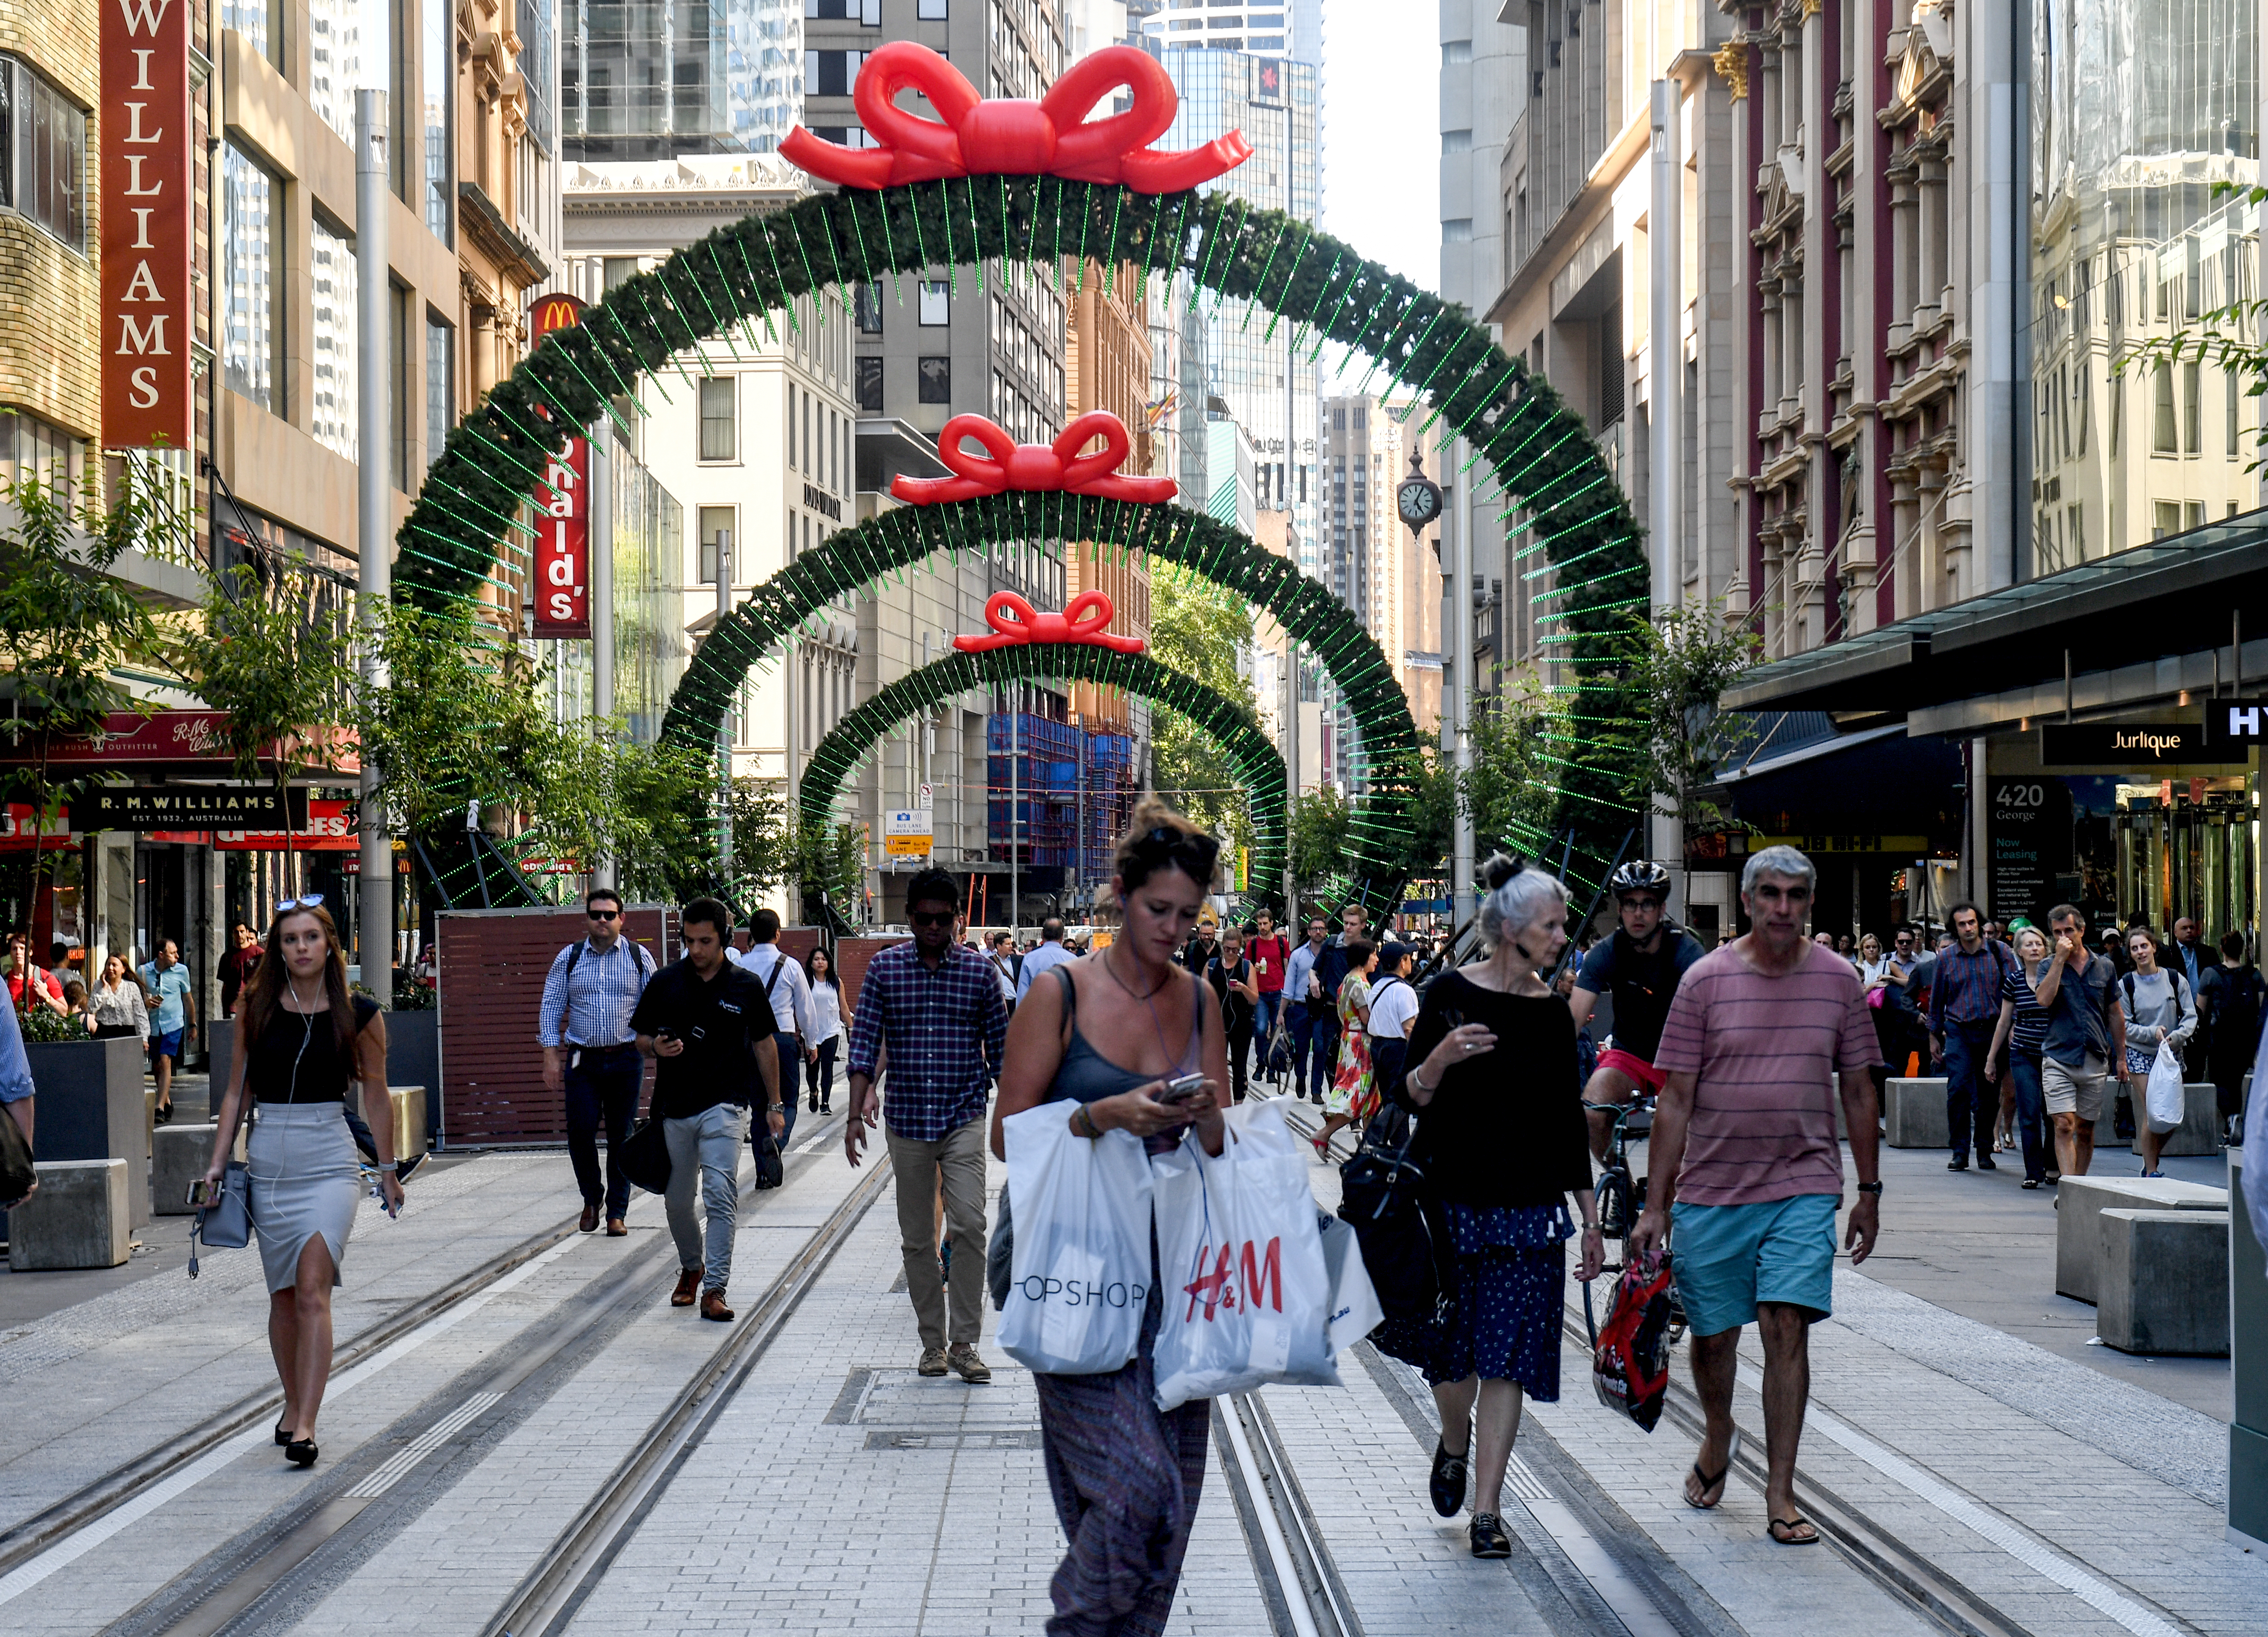 Retailers expect consumers to spend even more than last year on their Christmas shopping.